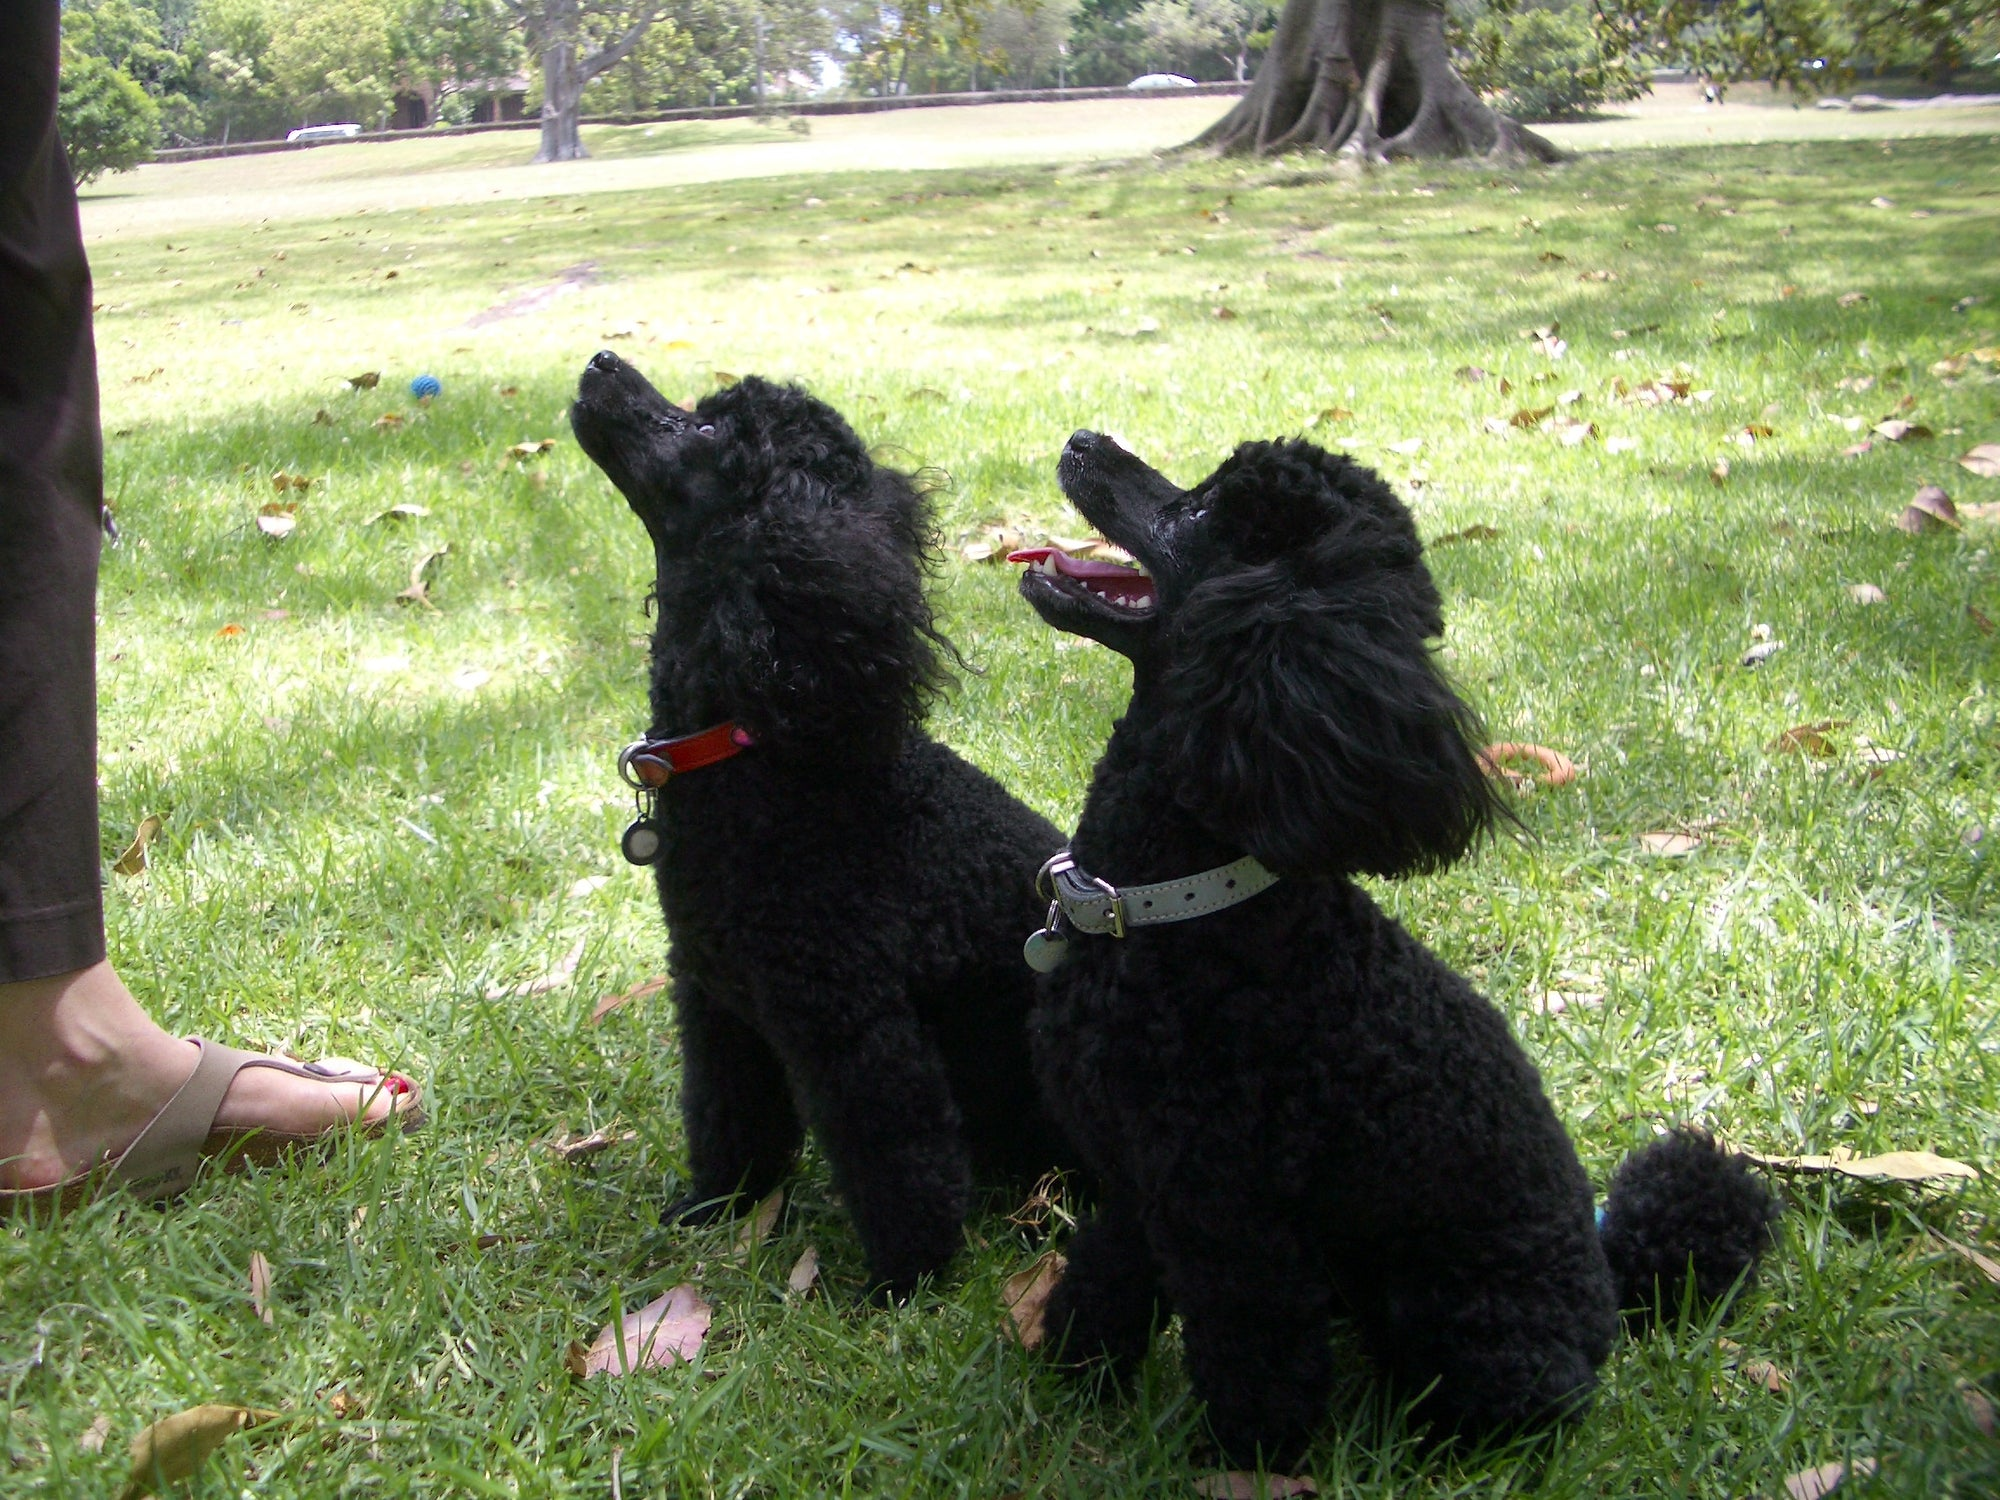 Black toy poodles Moo and Beanie sitting on grass Wellbeing for Dogs